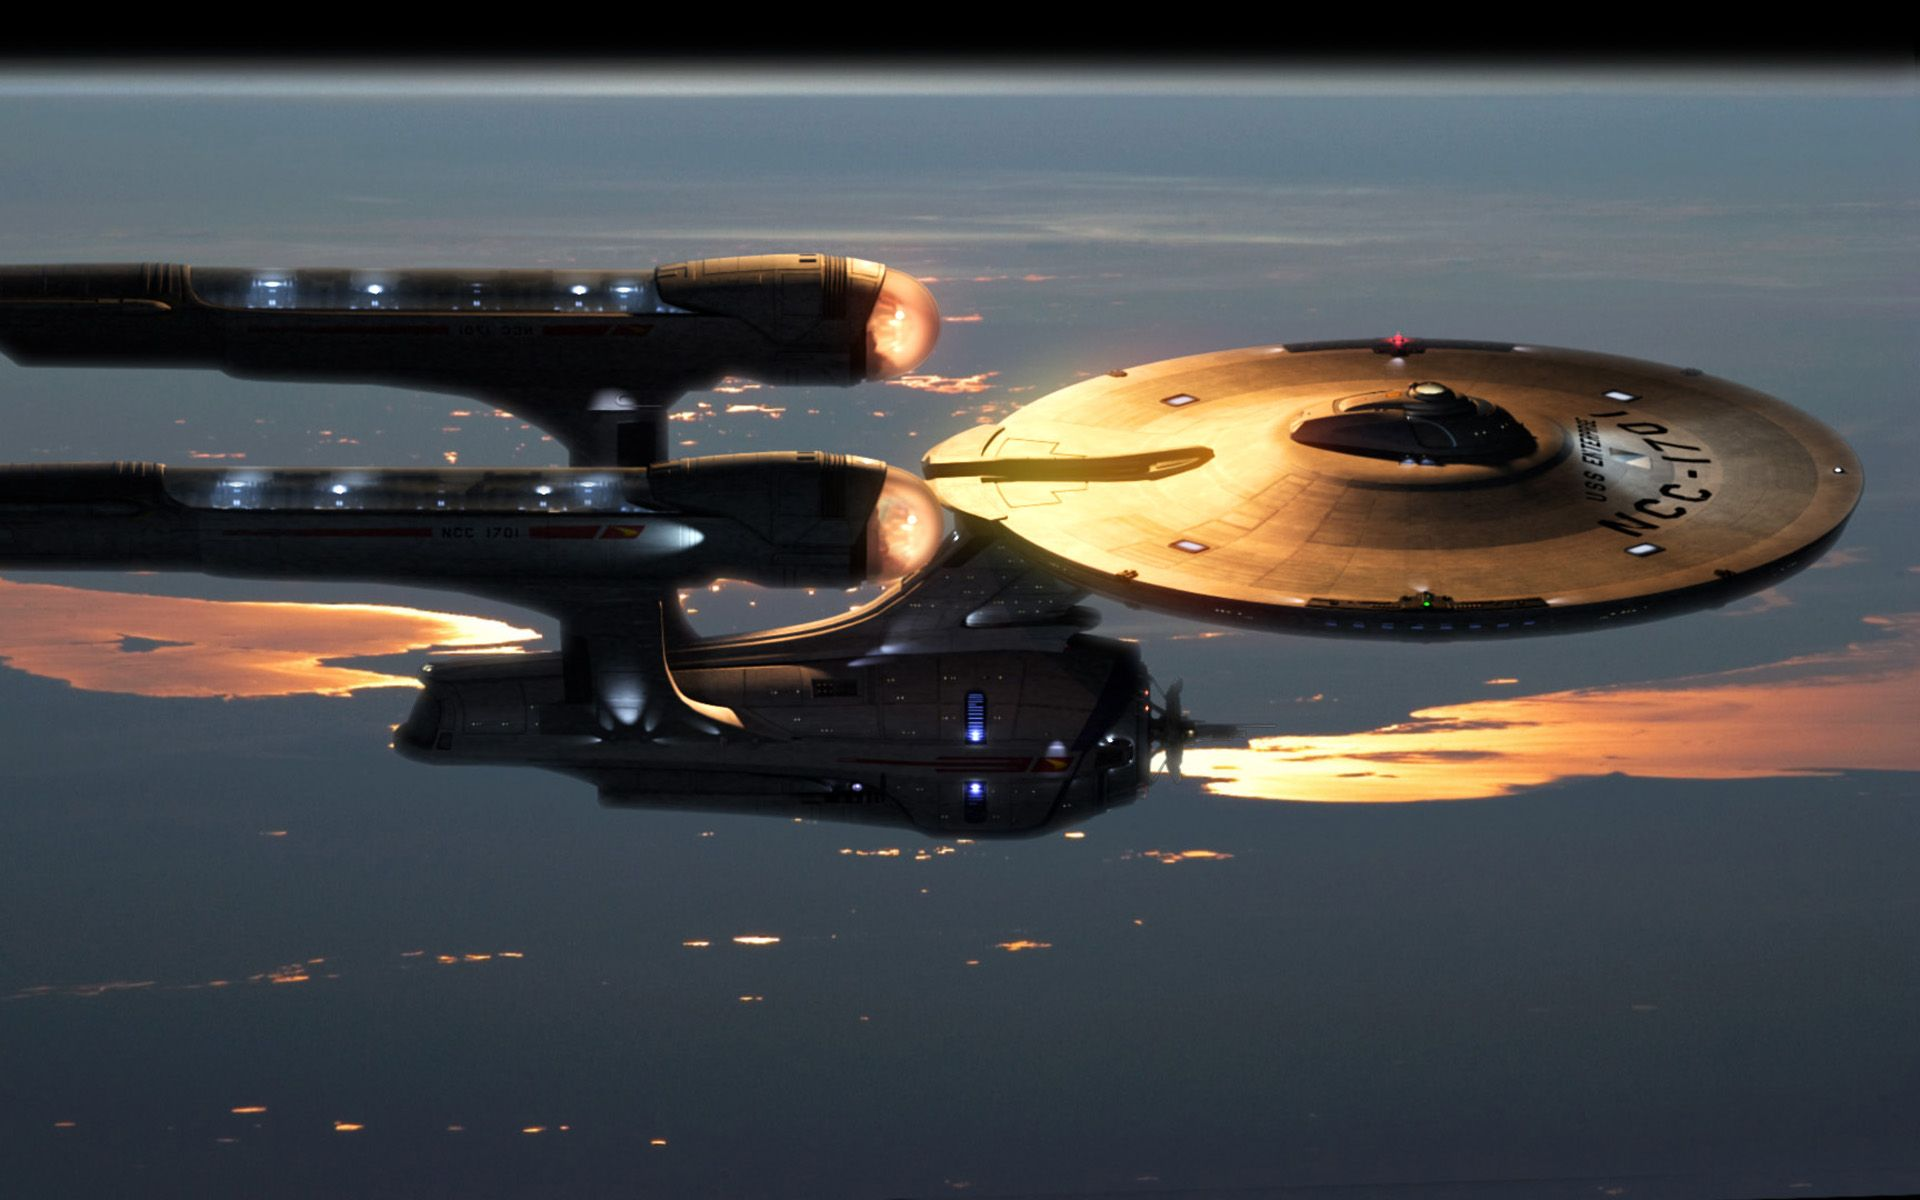 Uss Enterprise Top View Wallpaper 1920x1200